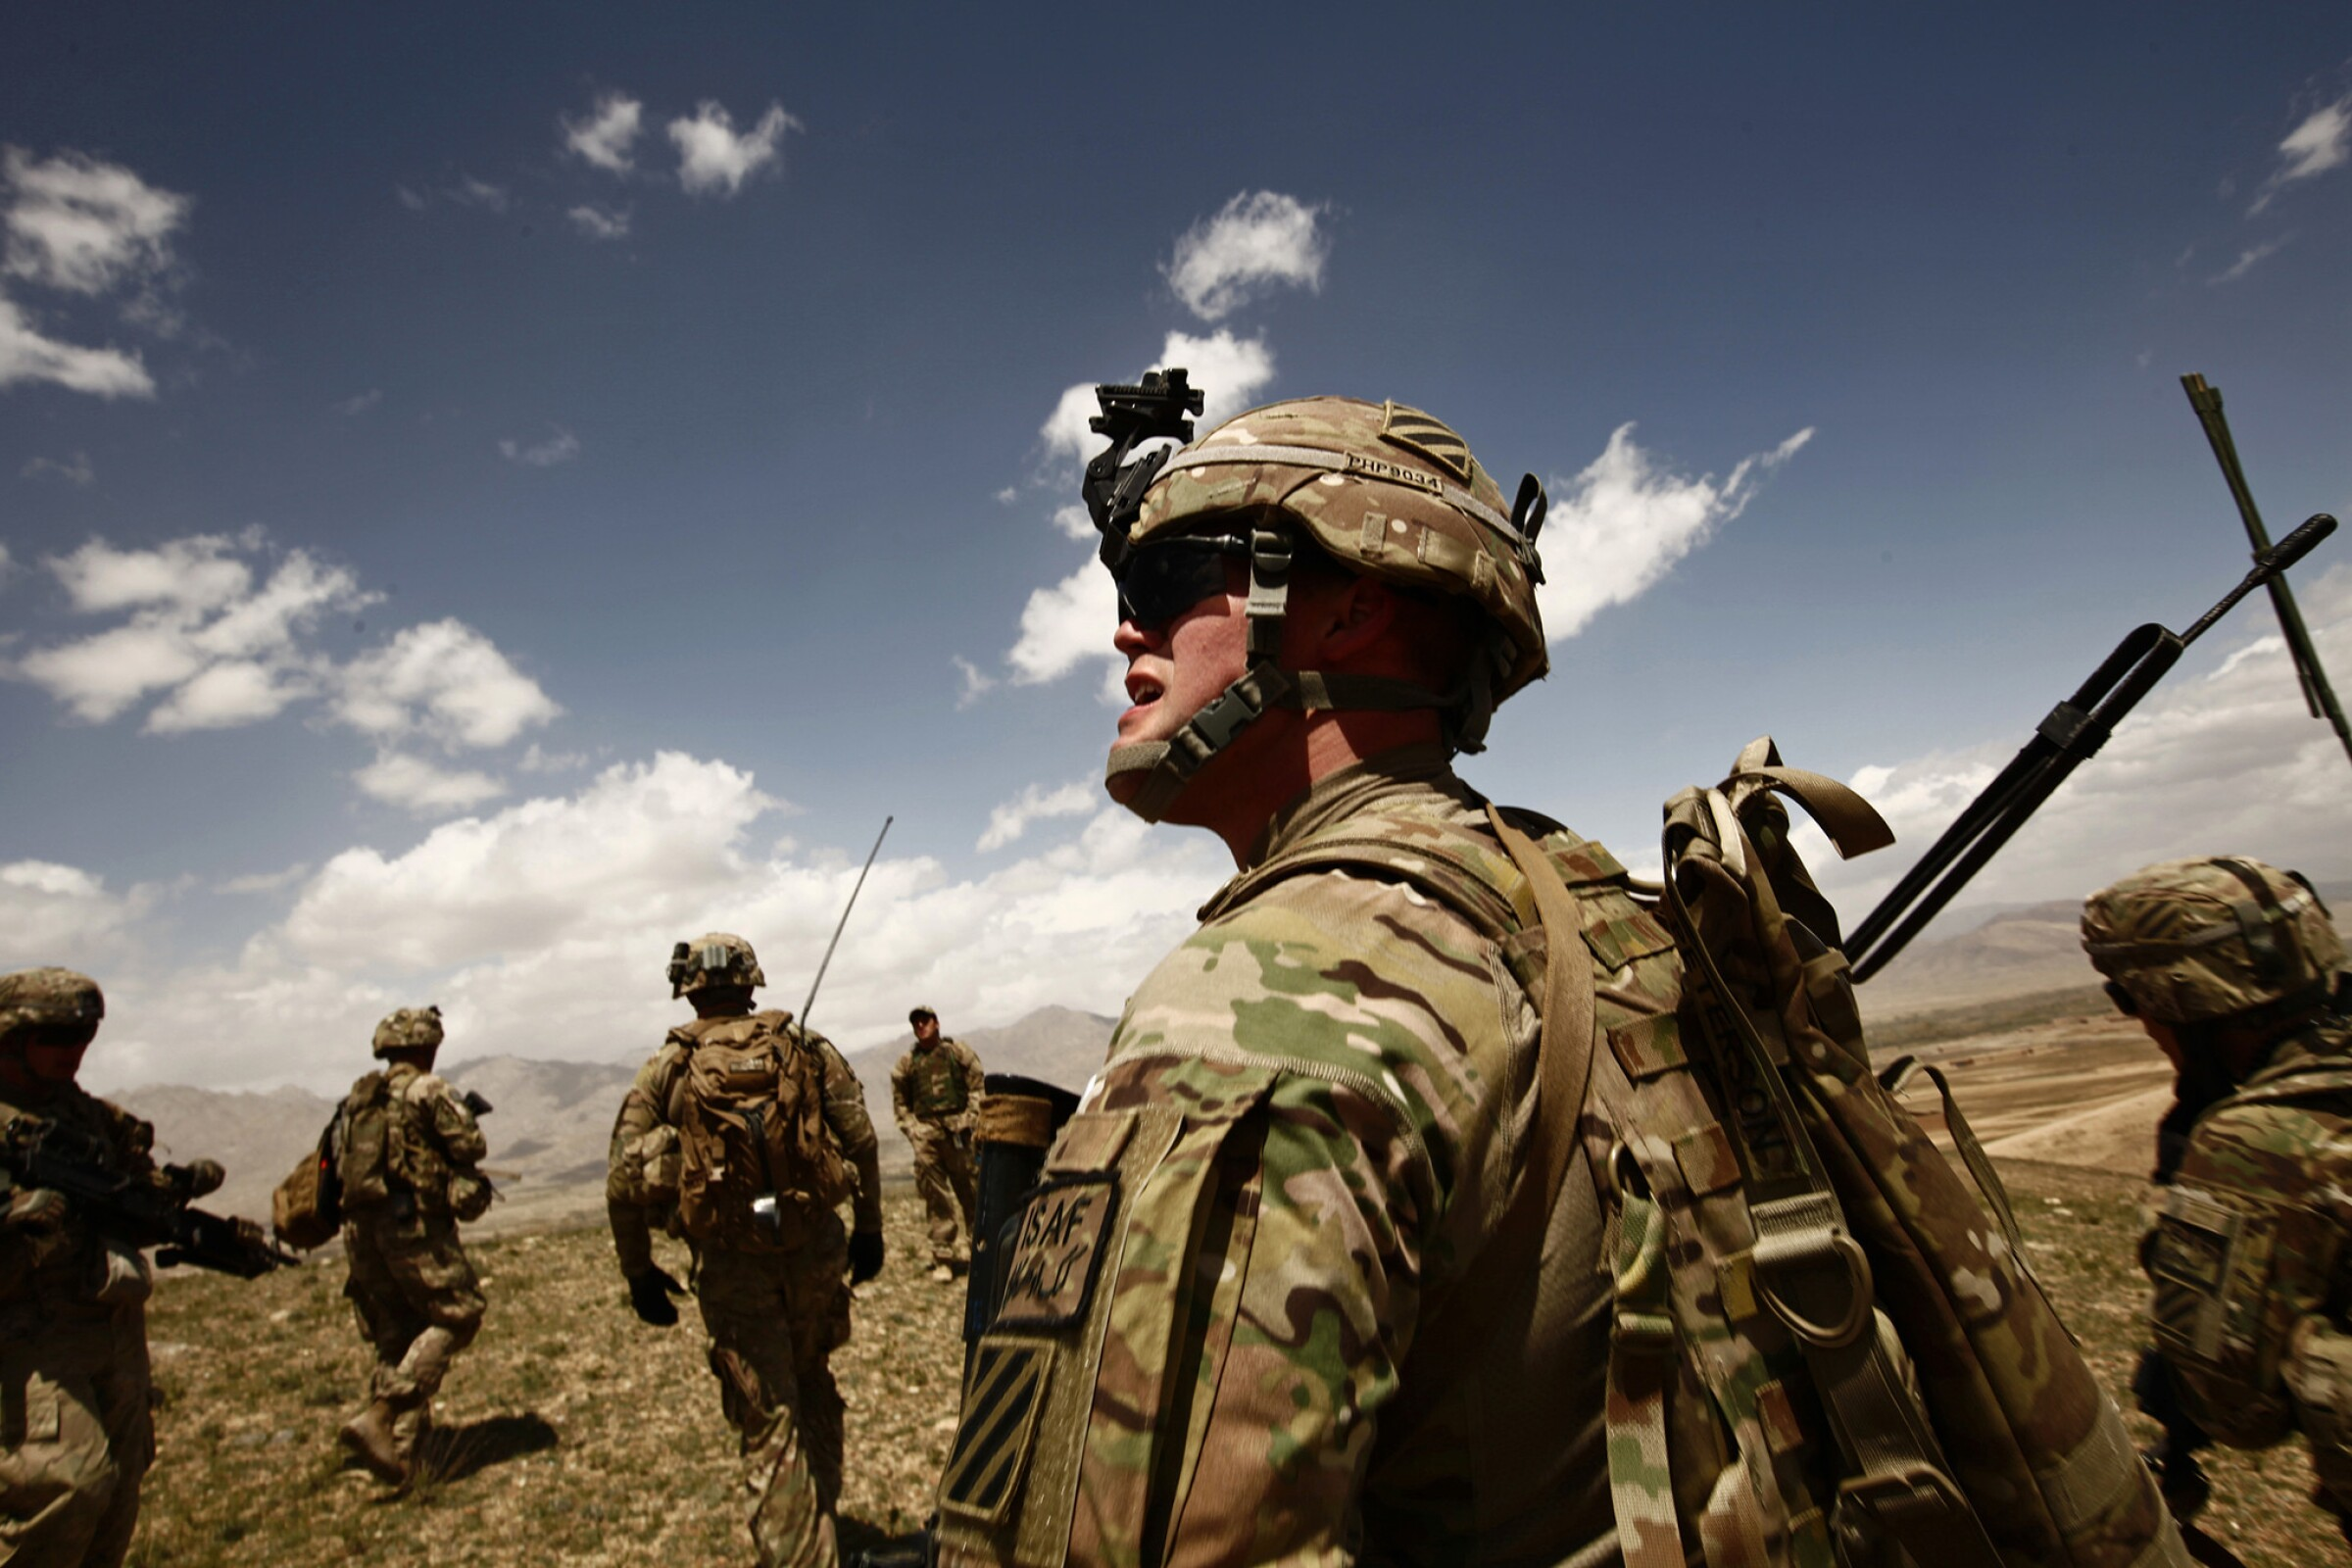 U.S. soldiers take part in an operation in support of Afghan soldiers in Wardak province, Afghanistan, in 2013.